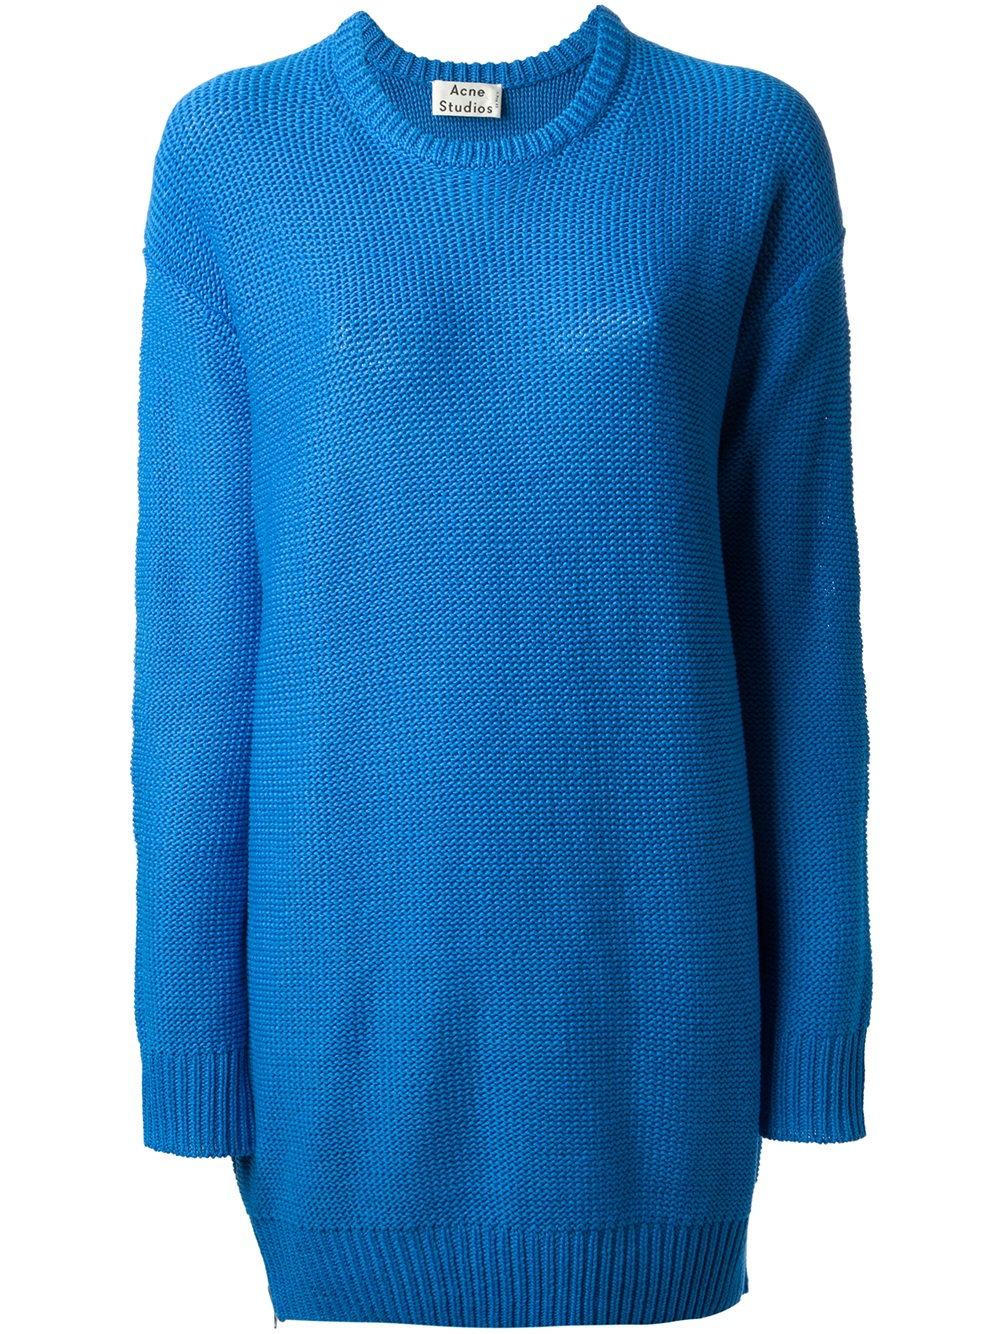 Have some fun in fuzzy oversized sweaters and long sweaters in all sorts of colors! Opt for a shaggy burgundy sweater, a royal blue sweater or blush pink sweater-- all stylish fuzzy sweater options! Go over the top with a furry poncho sweater!